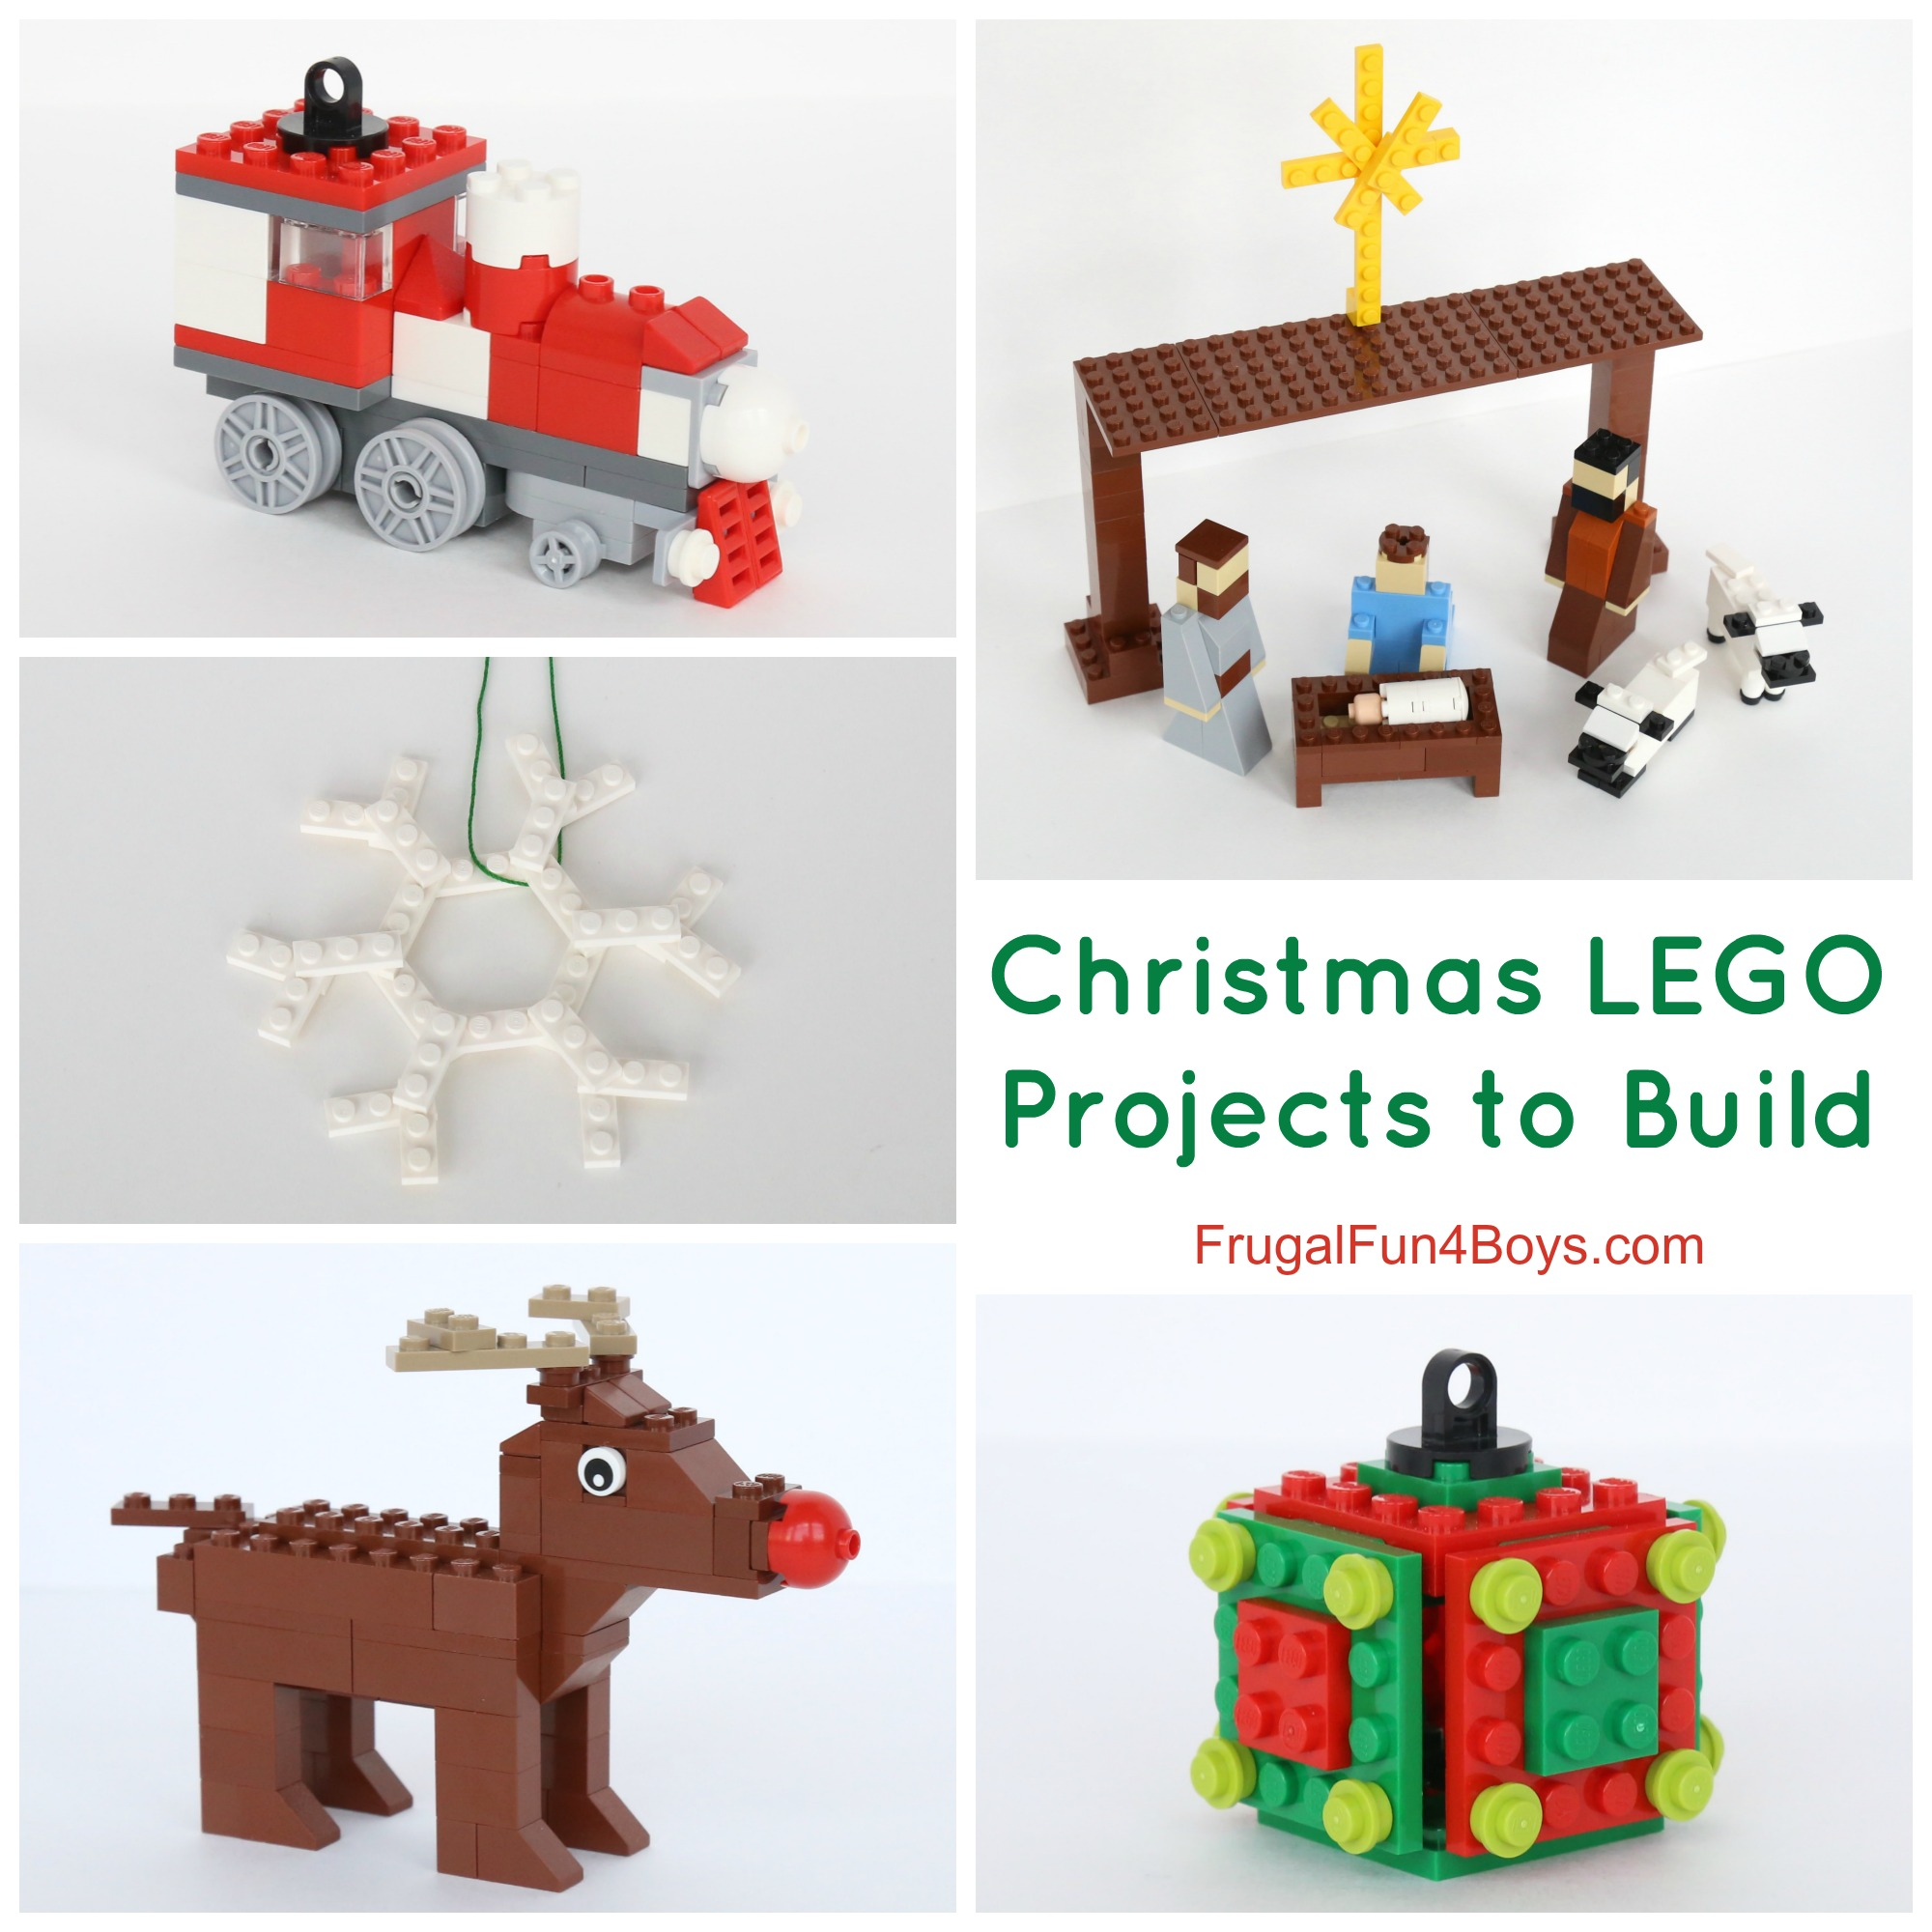 Five Christmas LEGO Projects to Build with Instructions